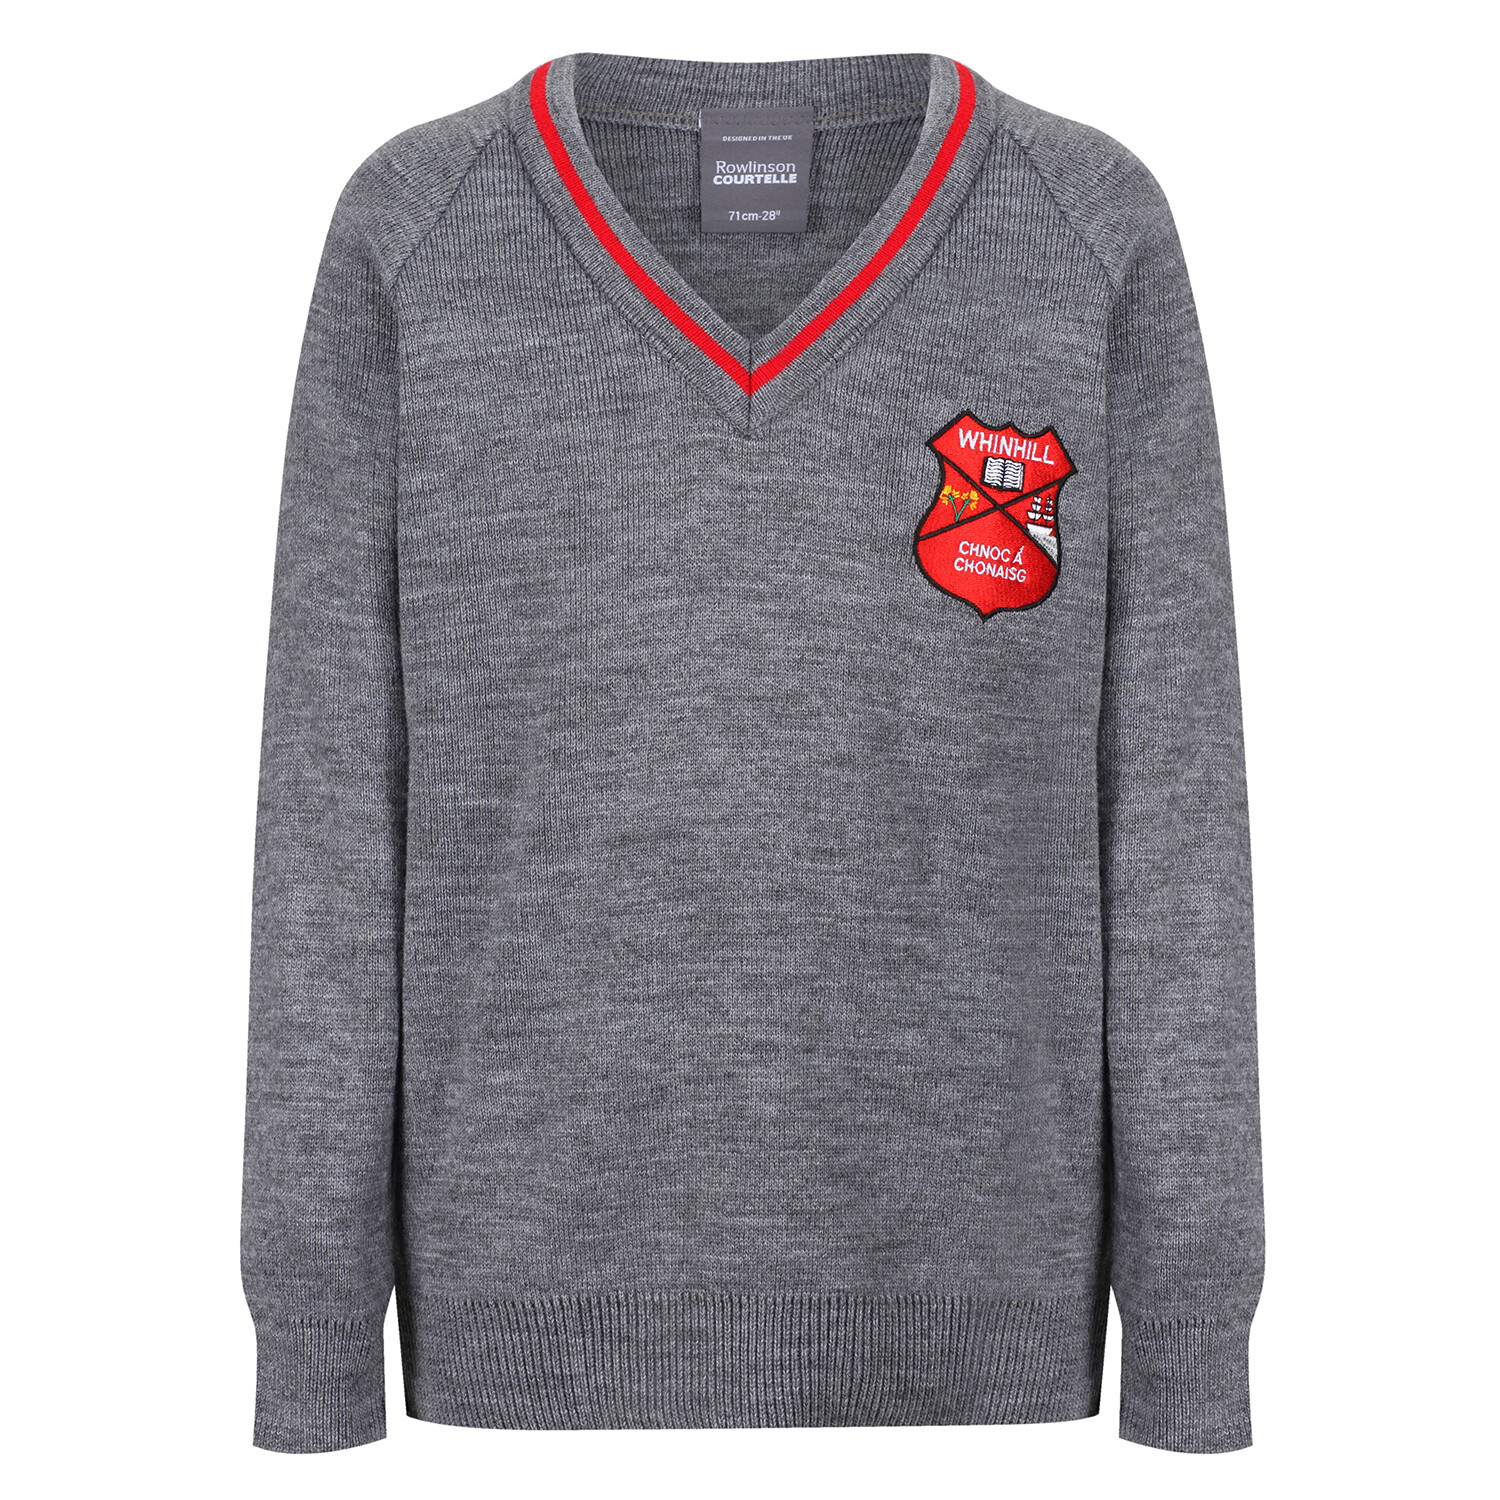 Whinhill Primary Knitted V-neck with stripe